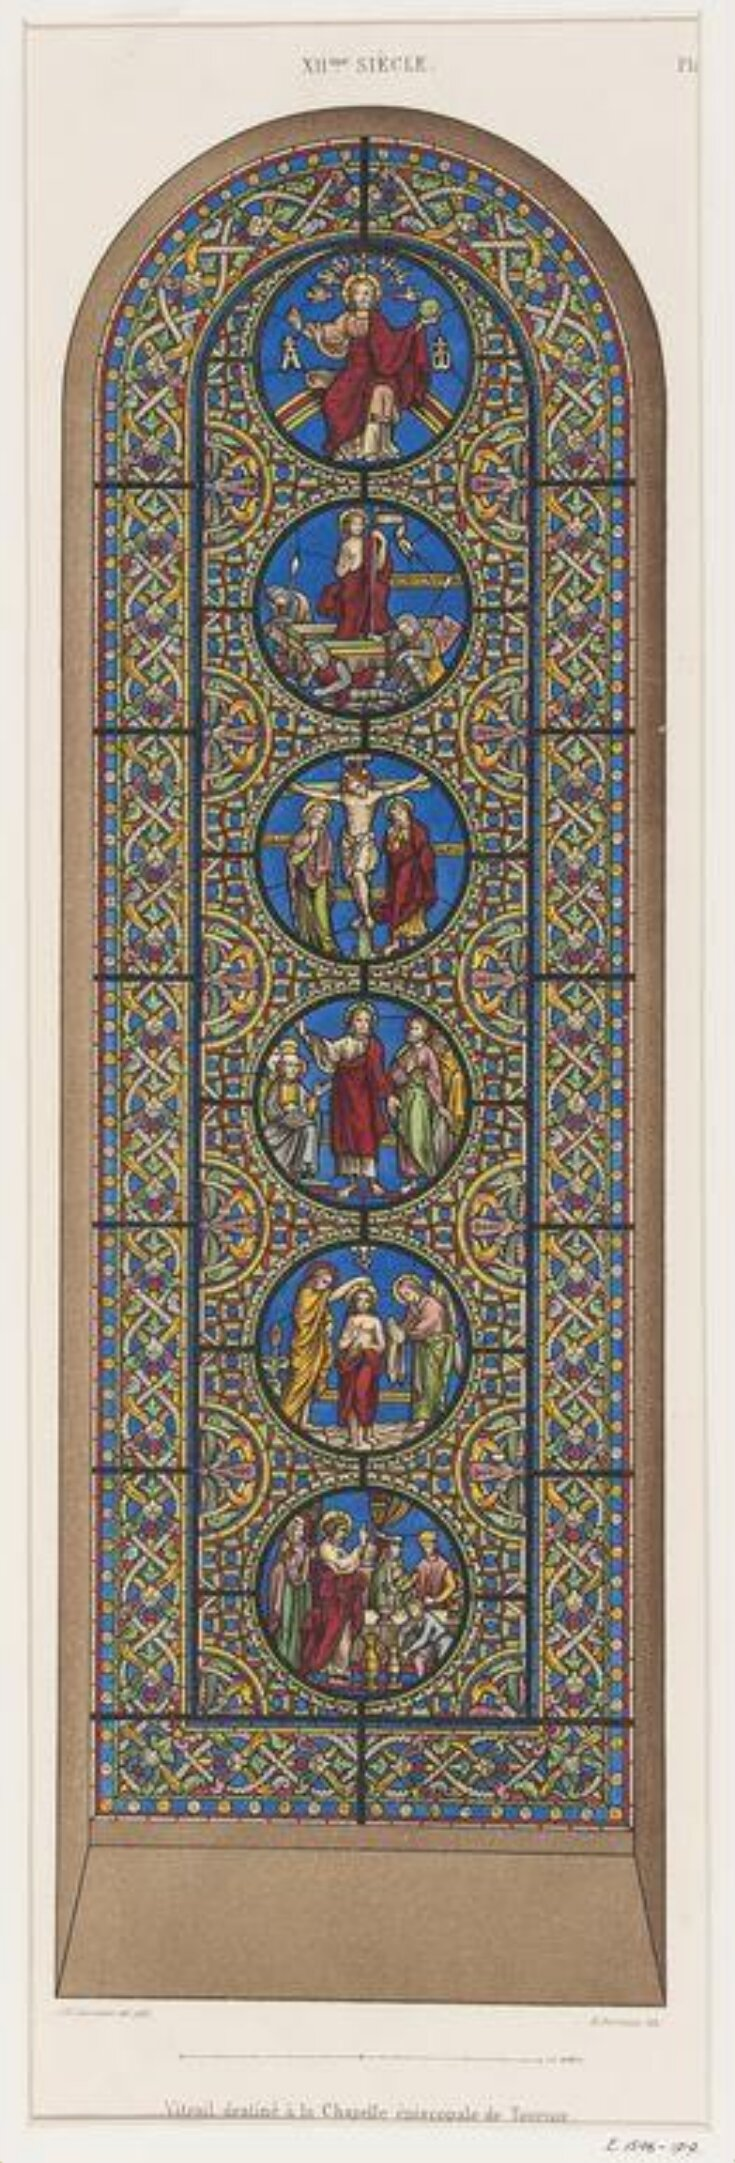 Stained glass window in the Chapelle Episcopale de Tournai top image